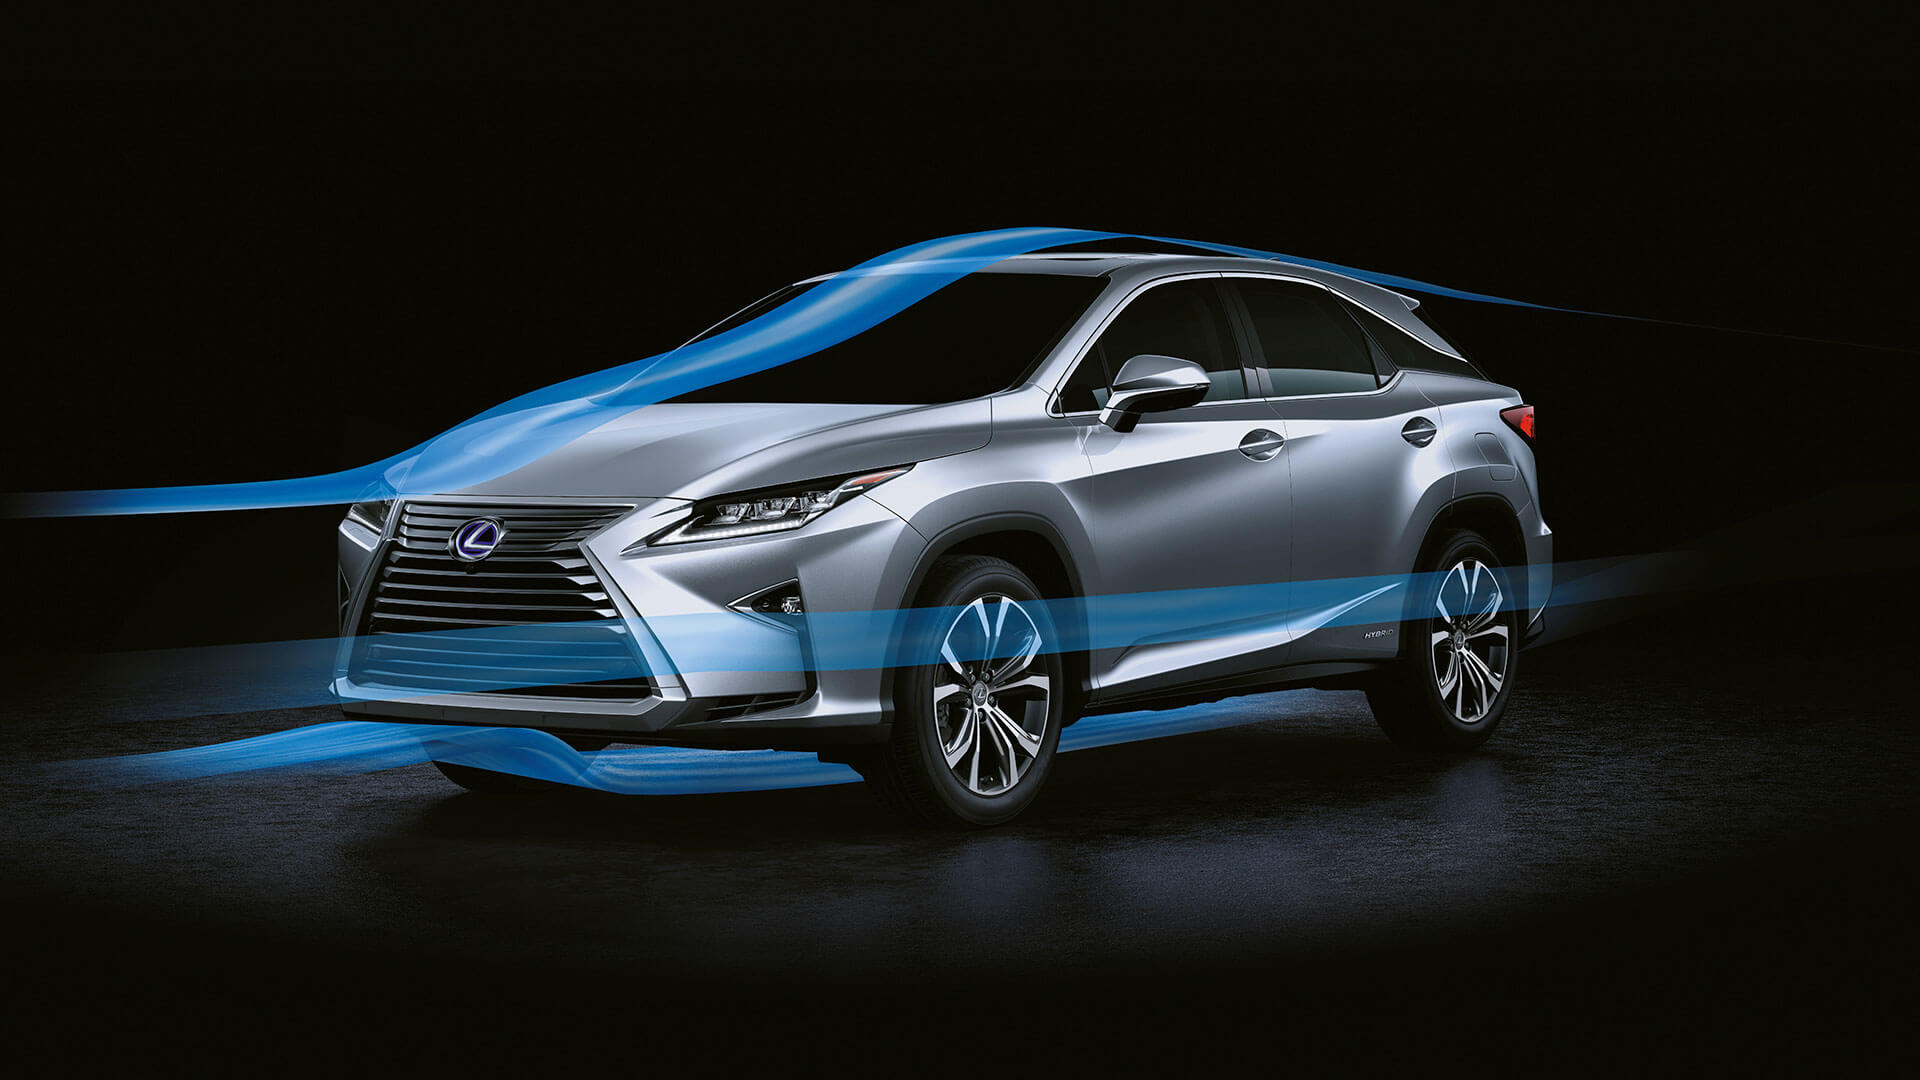 2017 lexus rx 450h features advanced aerodynamics